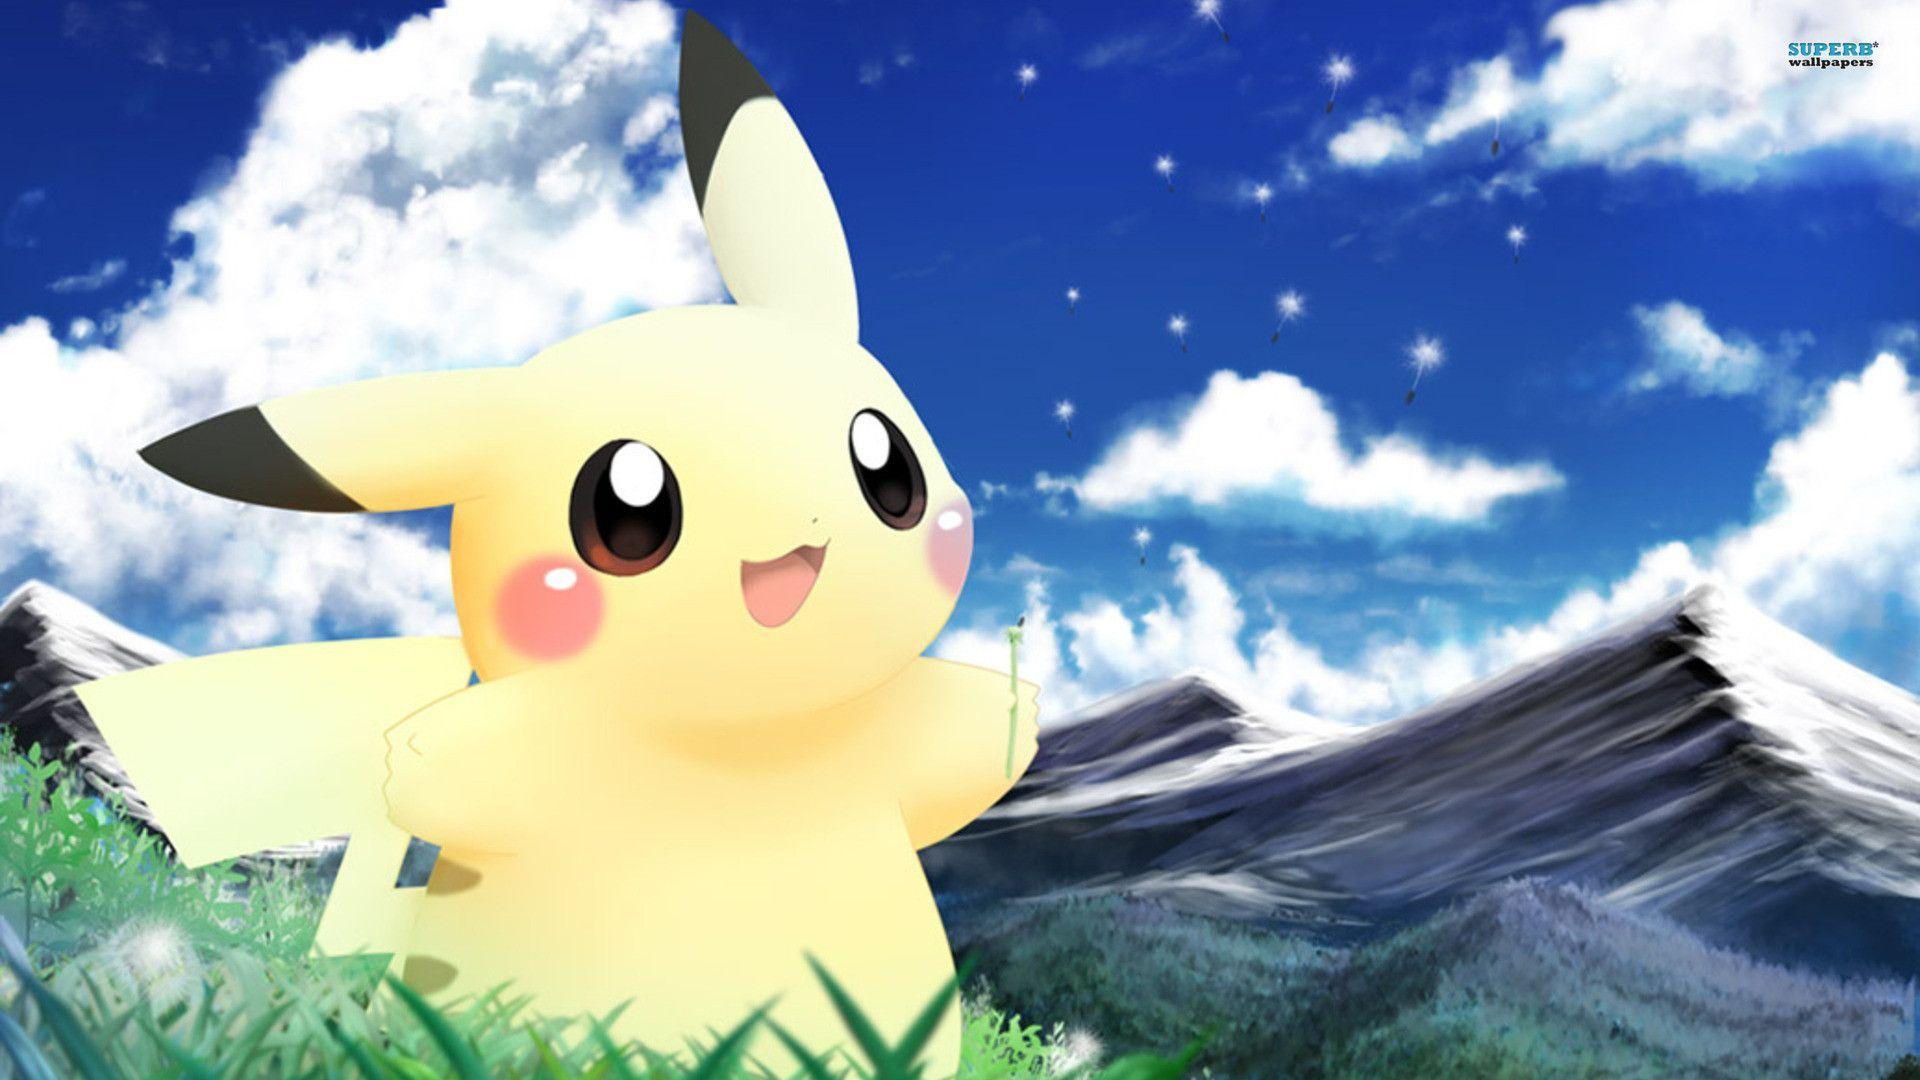 Wallpapers For > Pokemon Wallpapers Hd 1920x1080